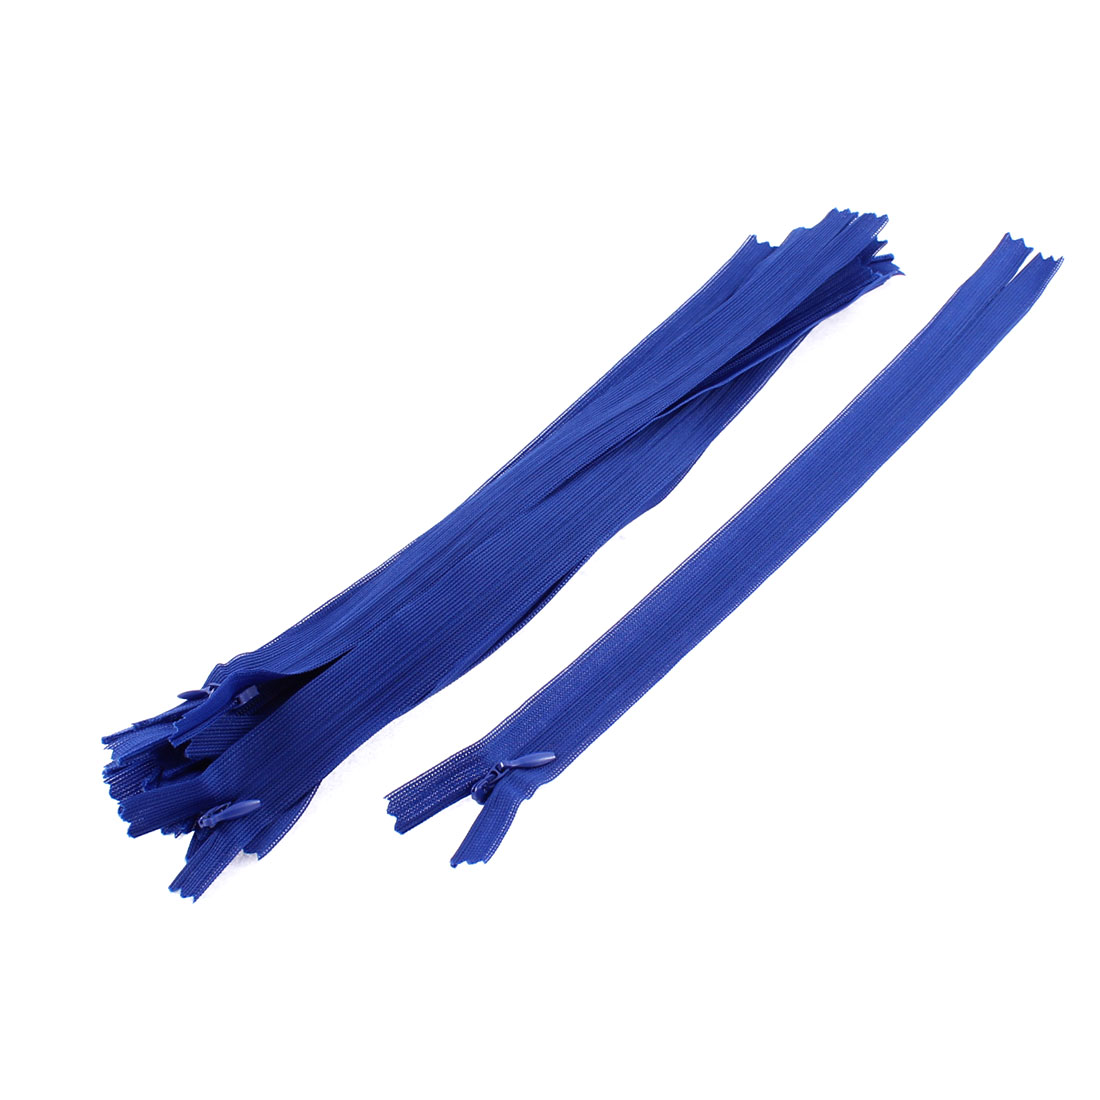 Clothes Invisible Nylon Coil Zippers Tailor Sewing Craft Tool Blue 25cm 10 Pcs